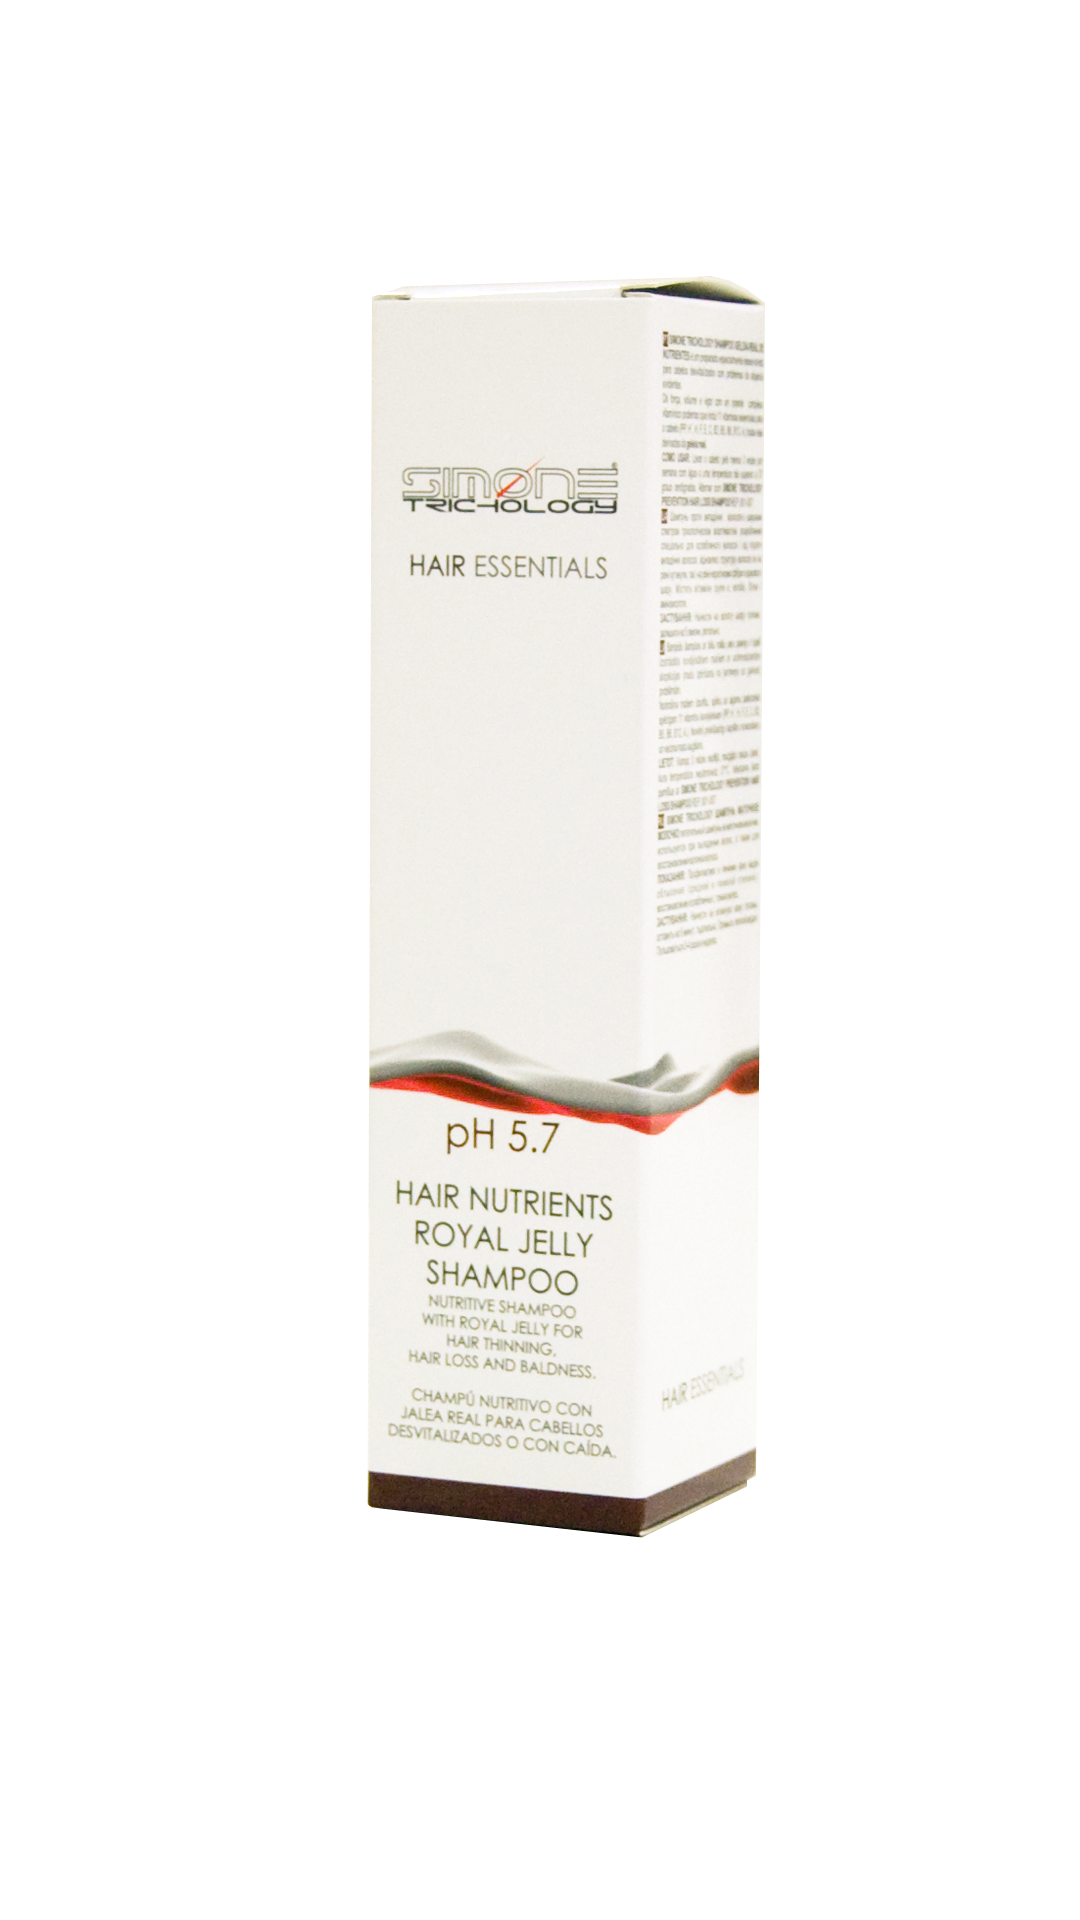 Hair Nutrients Royal Jelly